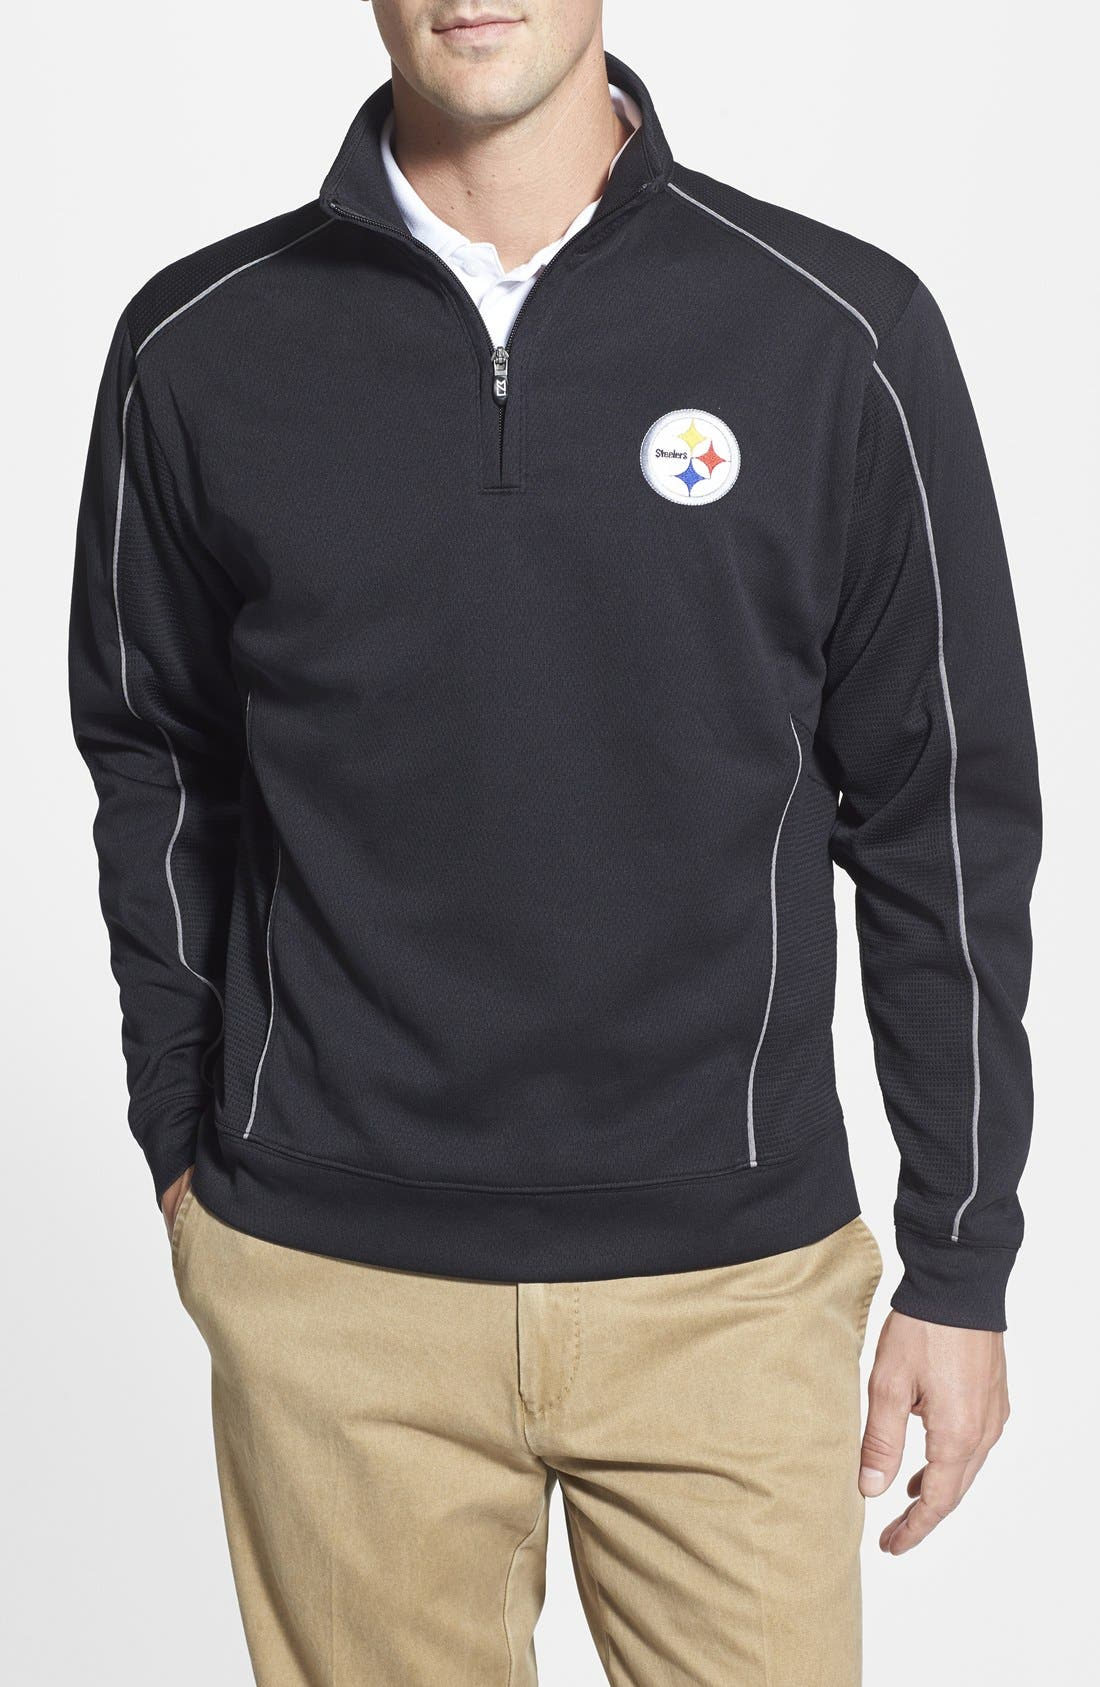 CUTTER & BUCK 'Pittsburgh Steelers - Edge' DryTec